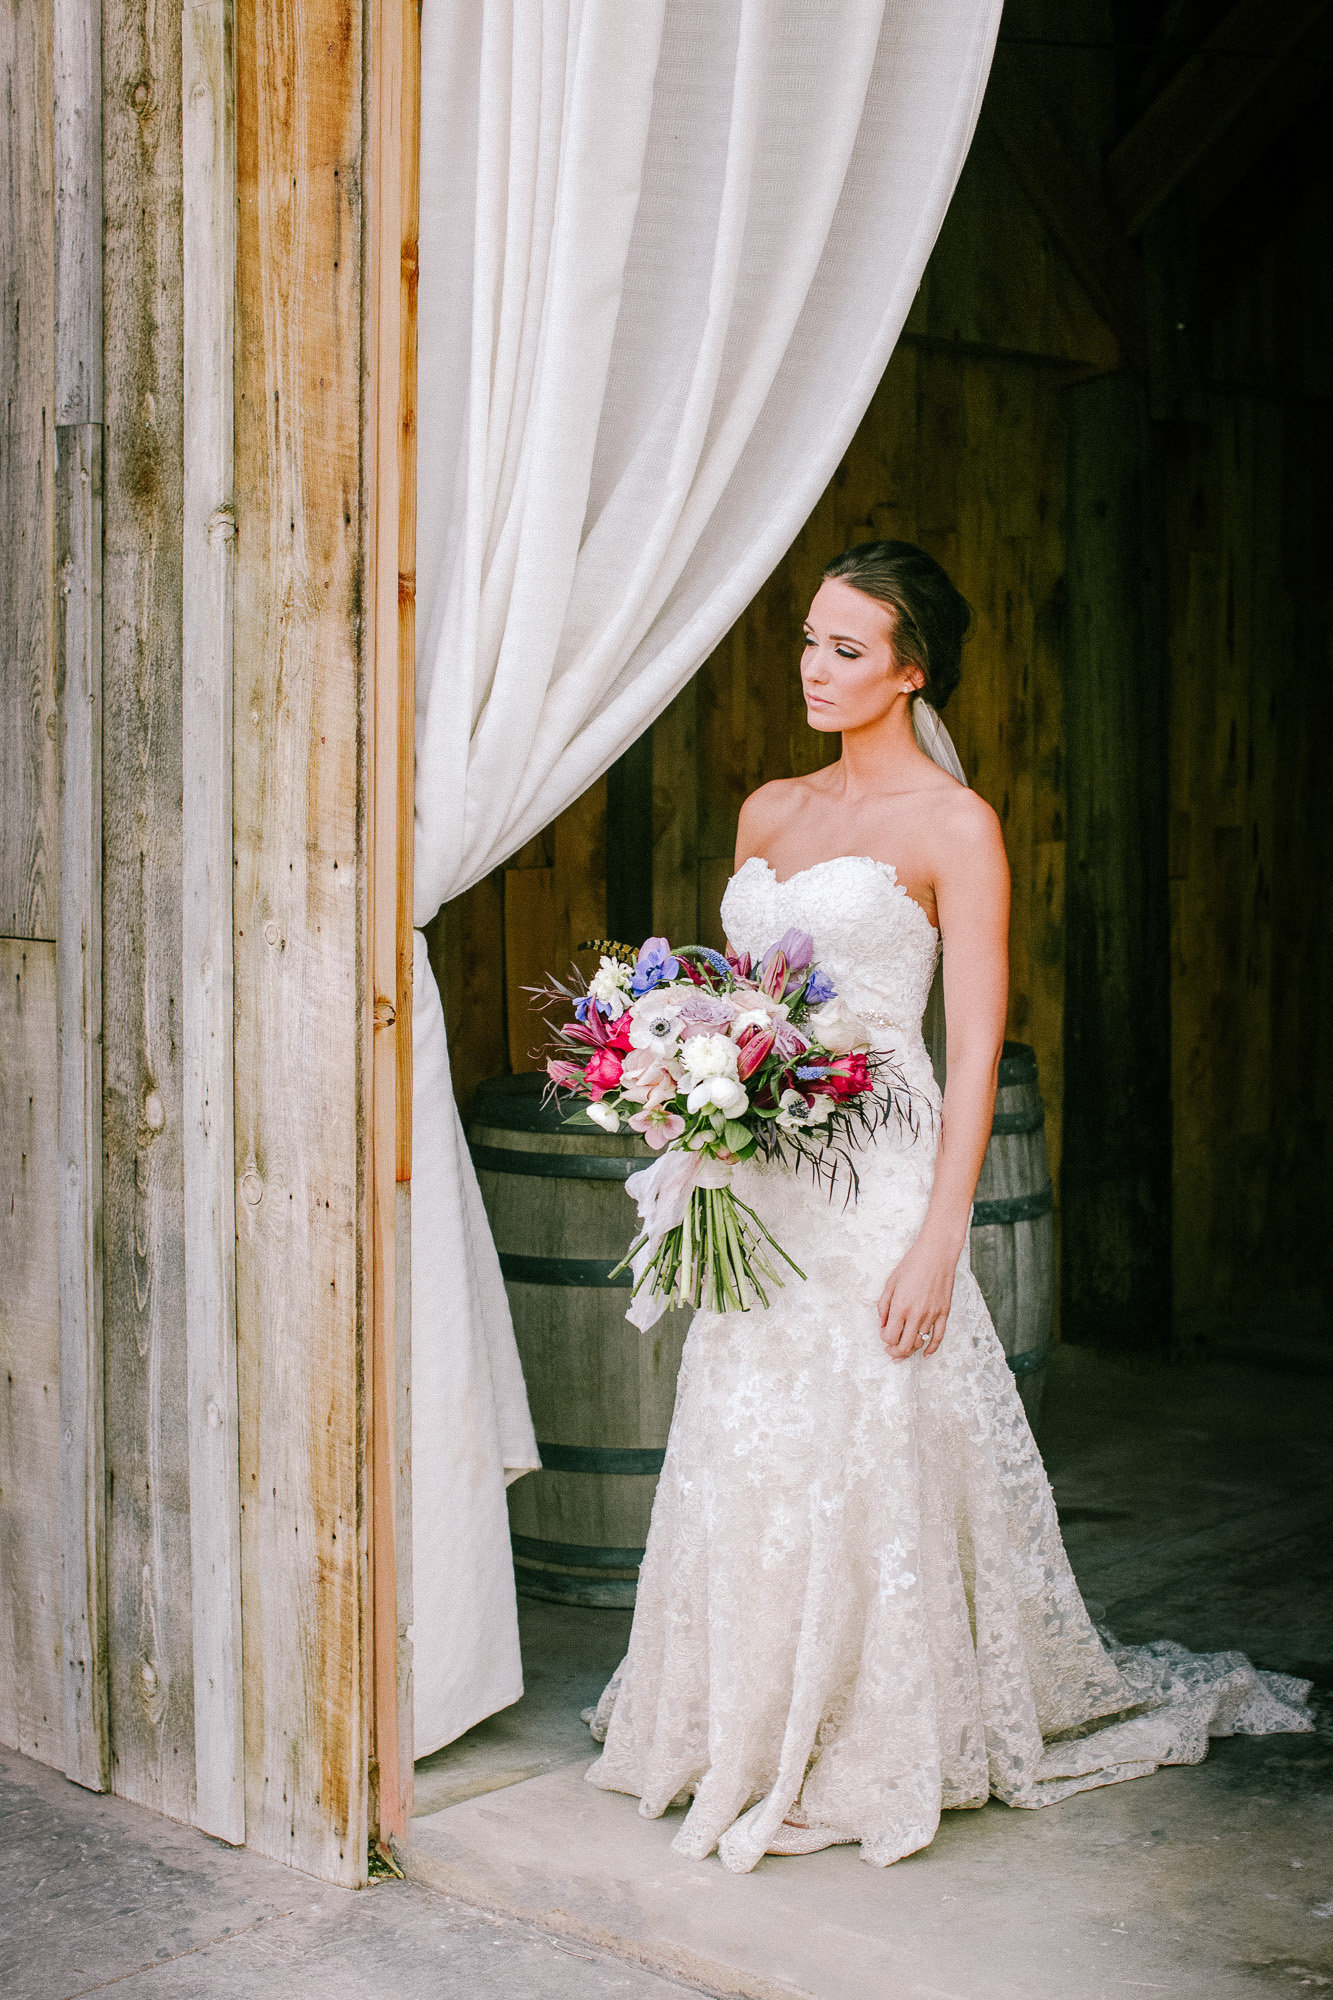 Ira and Lucy Wedding Coordination and Design, Shawna Hines Hair, Blush by Jamie Makeup, Radion Photography